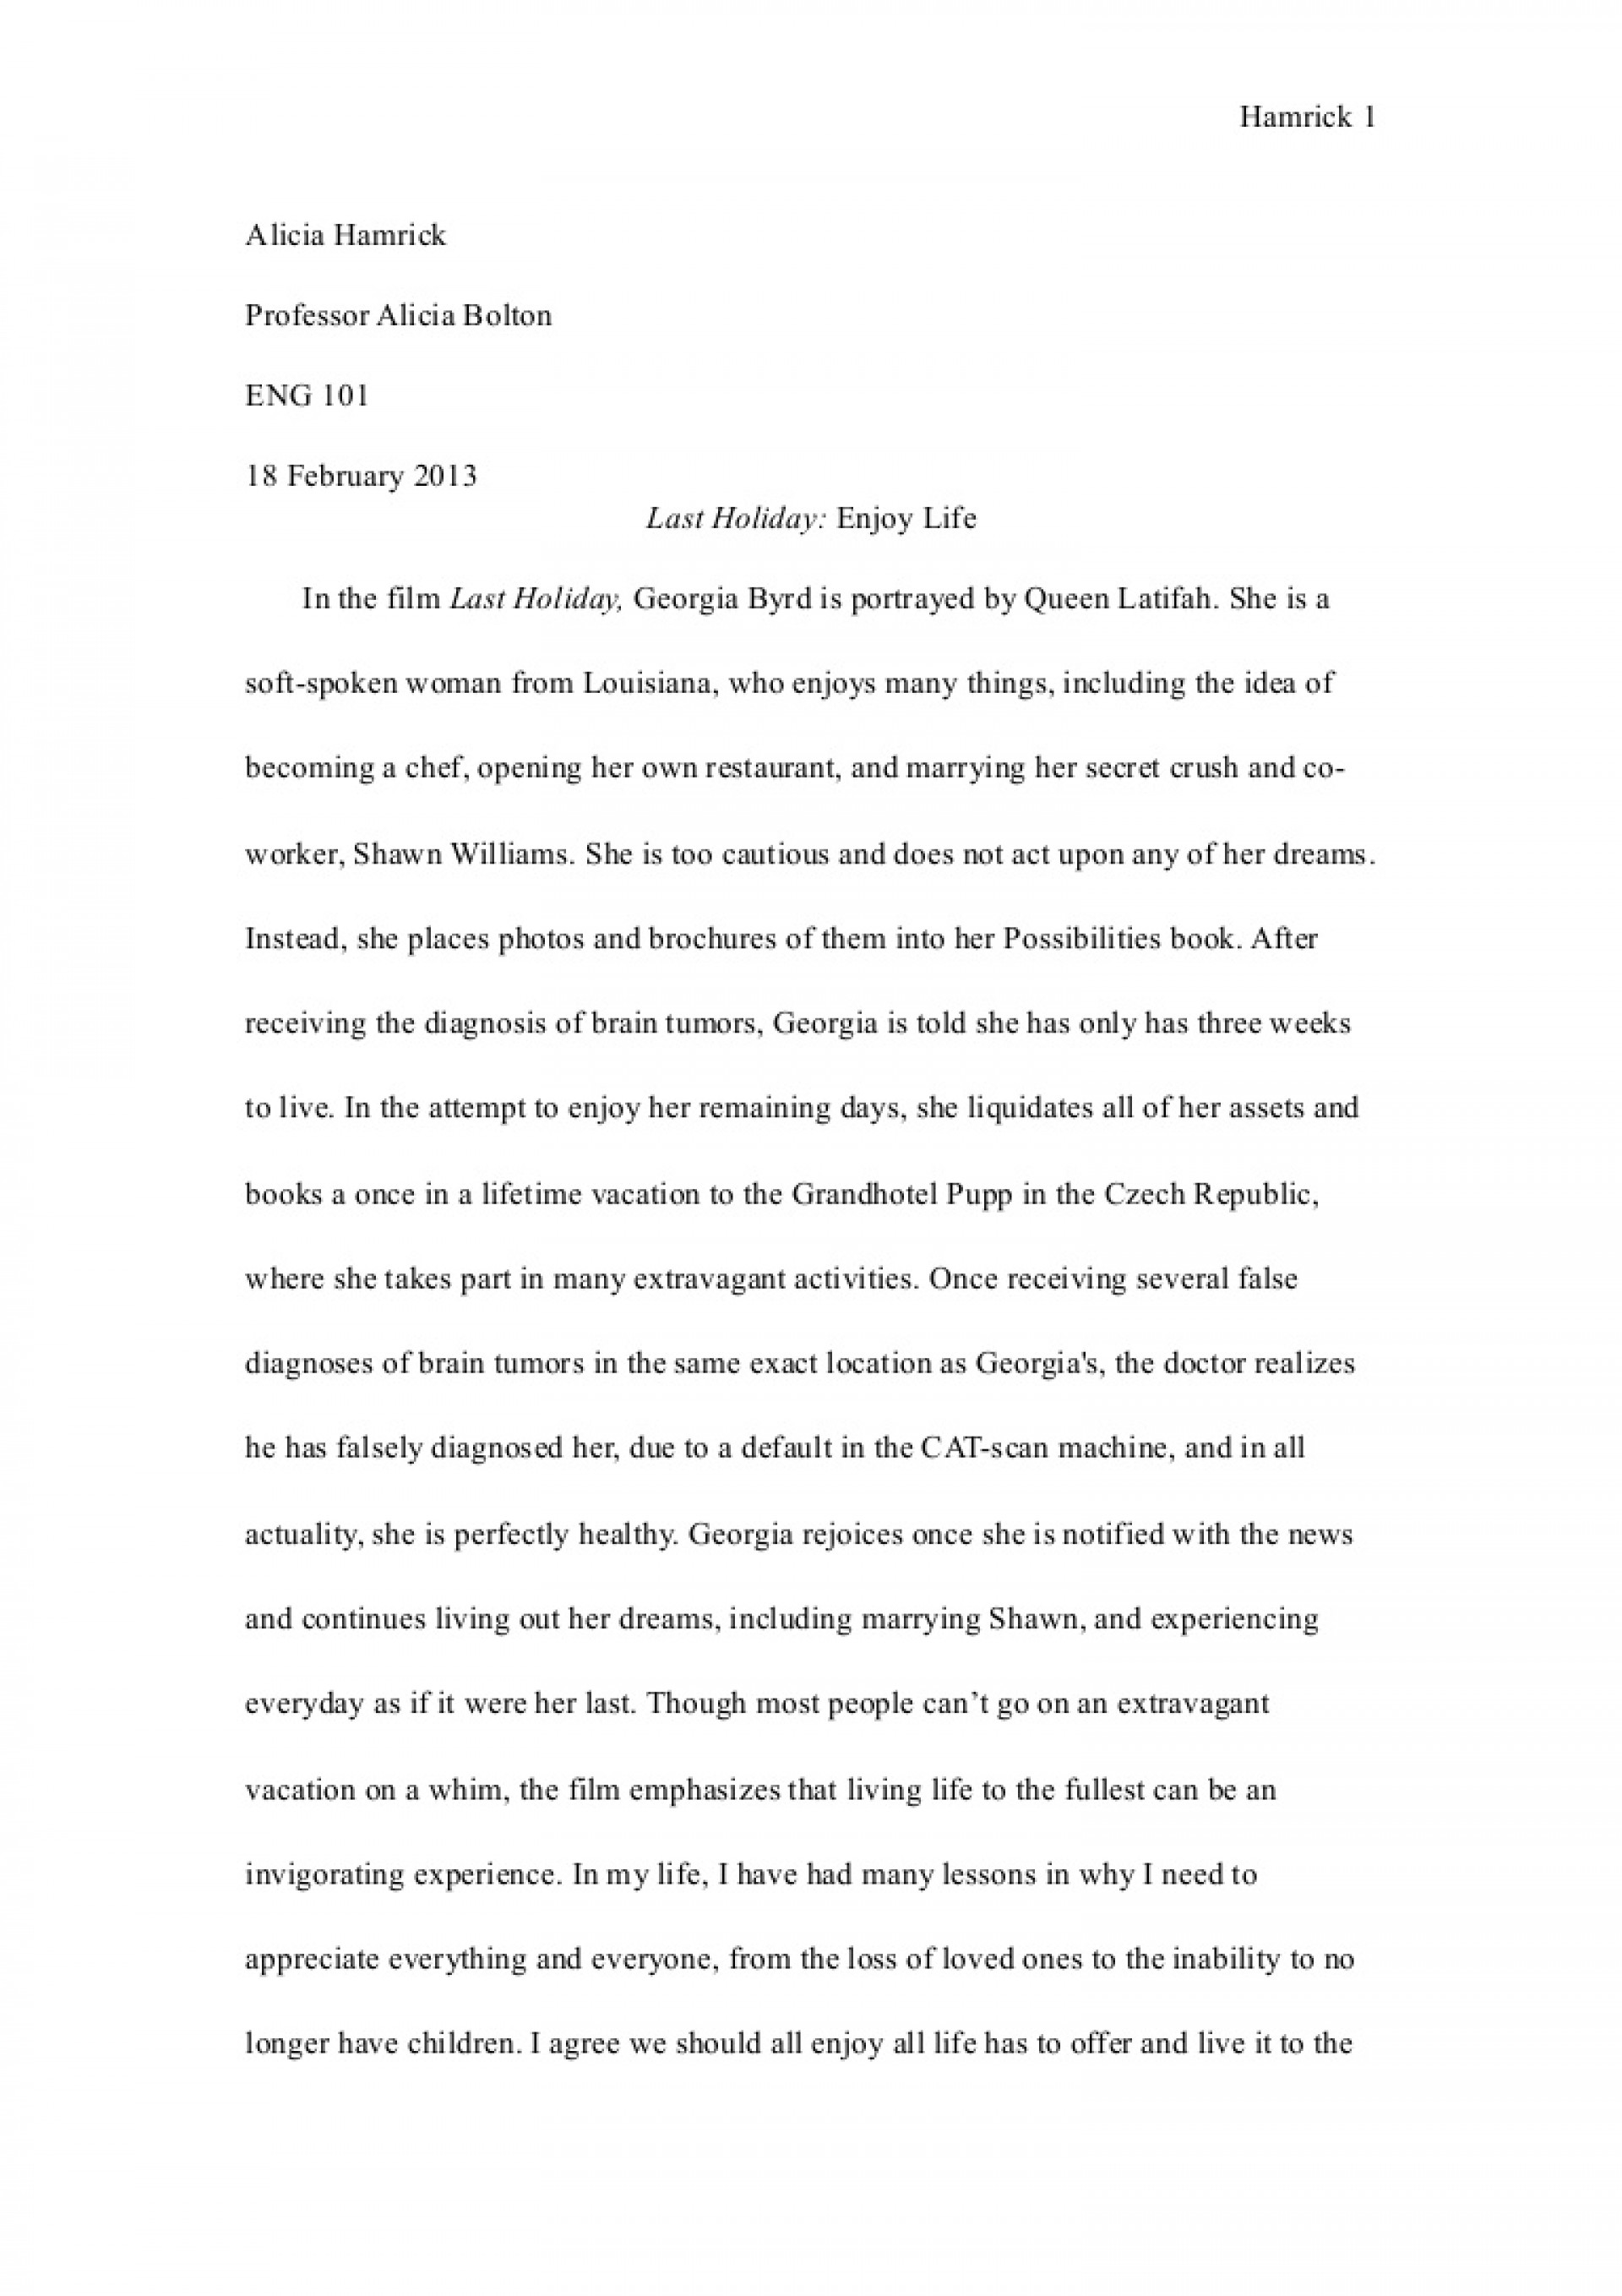 007 Essay Example On Achieving Goal Eng101essay1revisied Phpapp02 Thumbnail Stunning A Narrative 1920